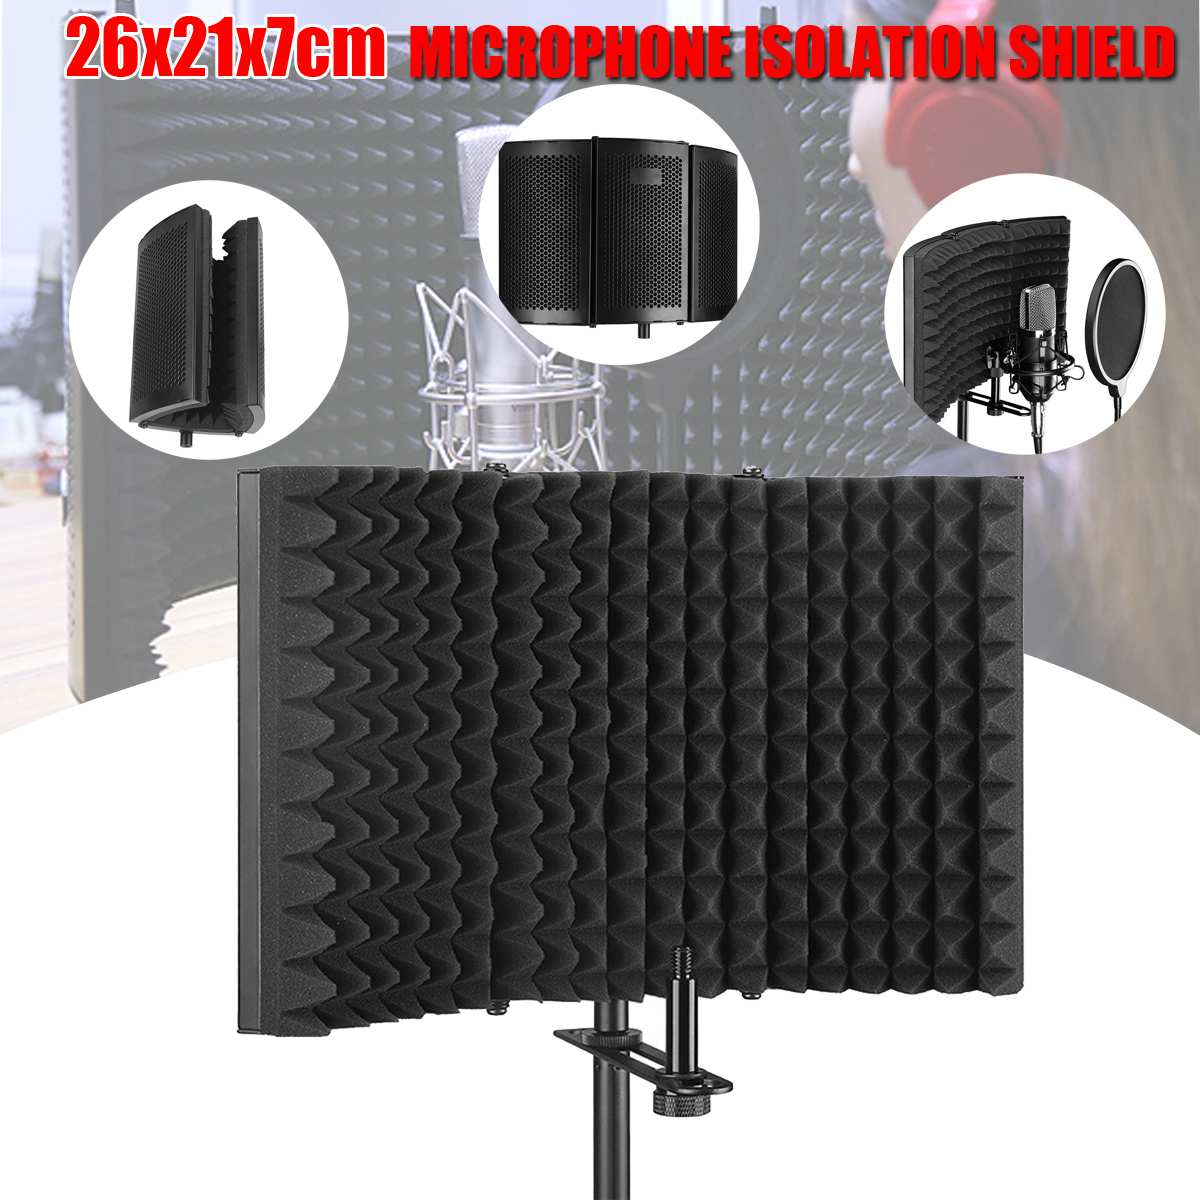 Foldable Microphone Acoustic Isolation Shield Acoustic Foams Panel Studio for Recording Live Broadcast Microphone Accessories acoustic metamaterials